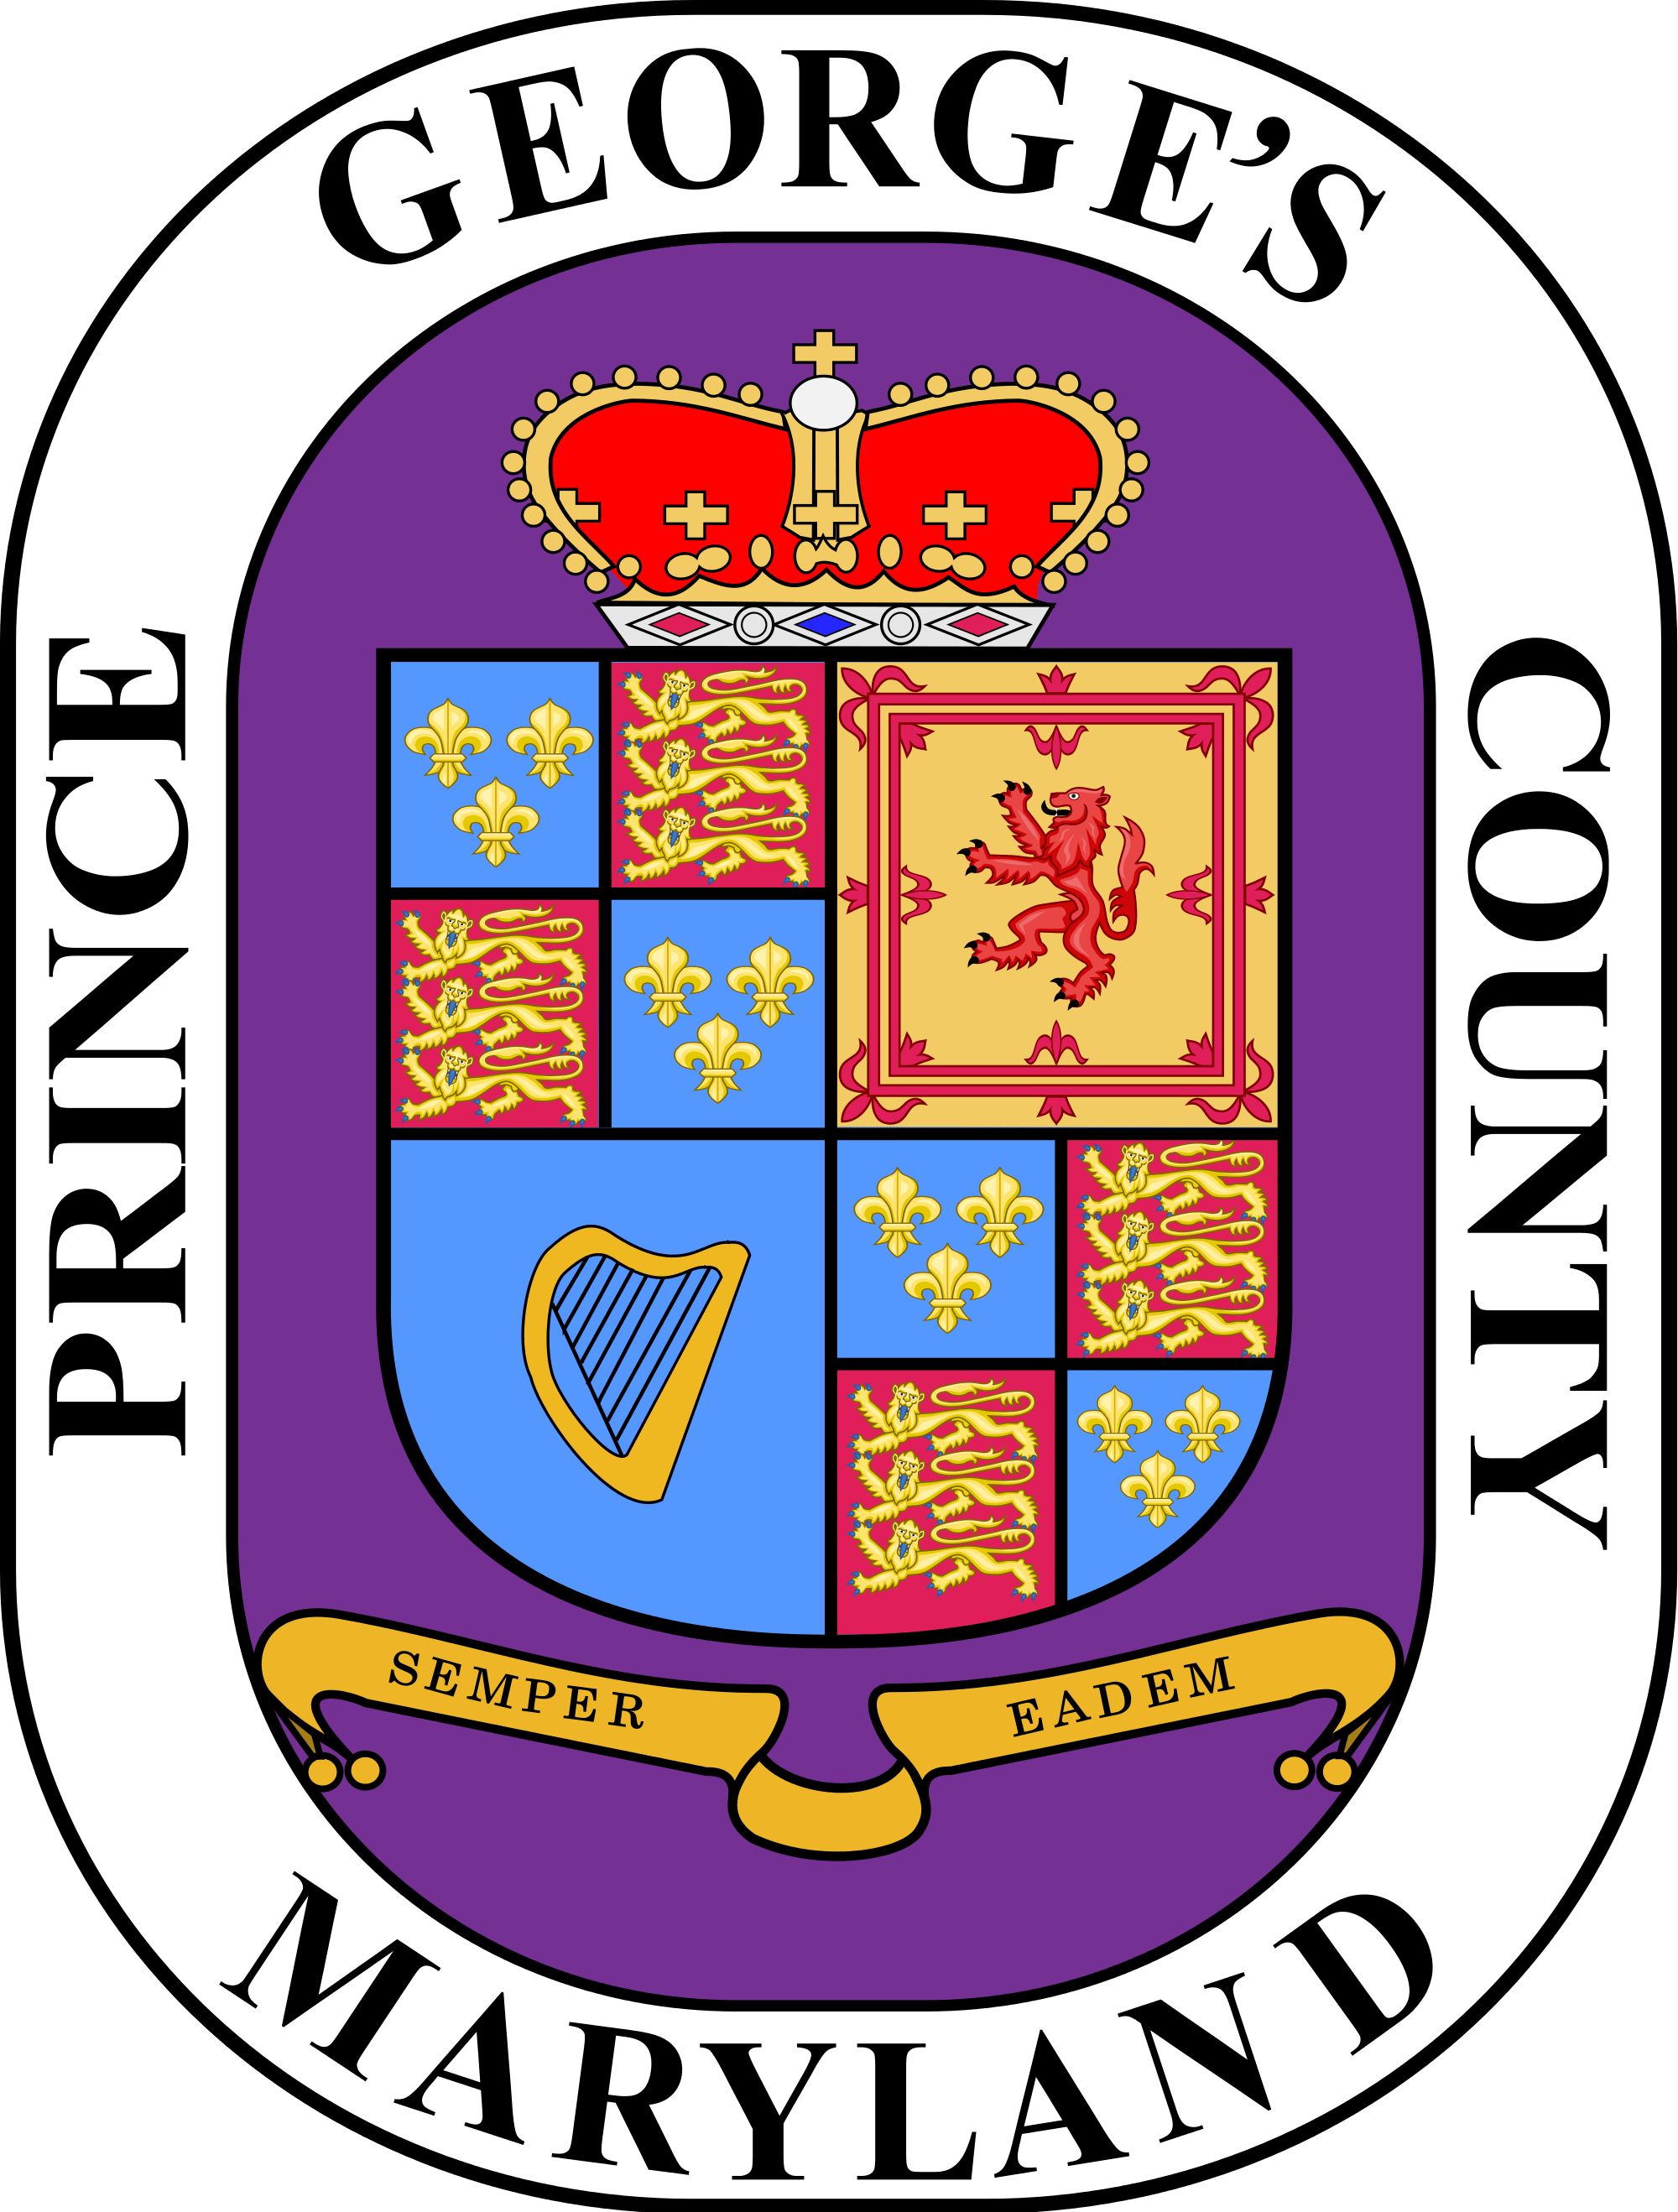 Prince George's County Property Tax